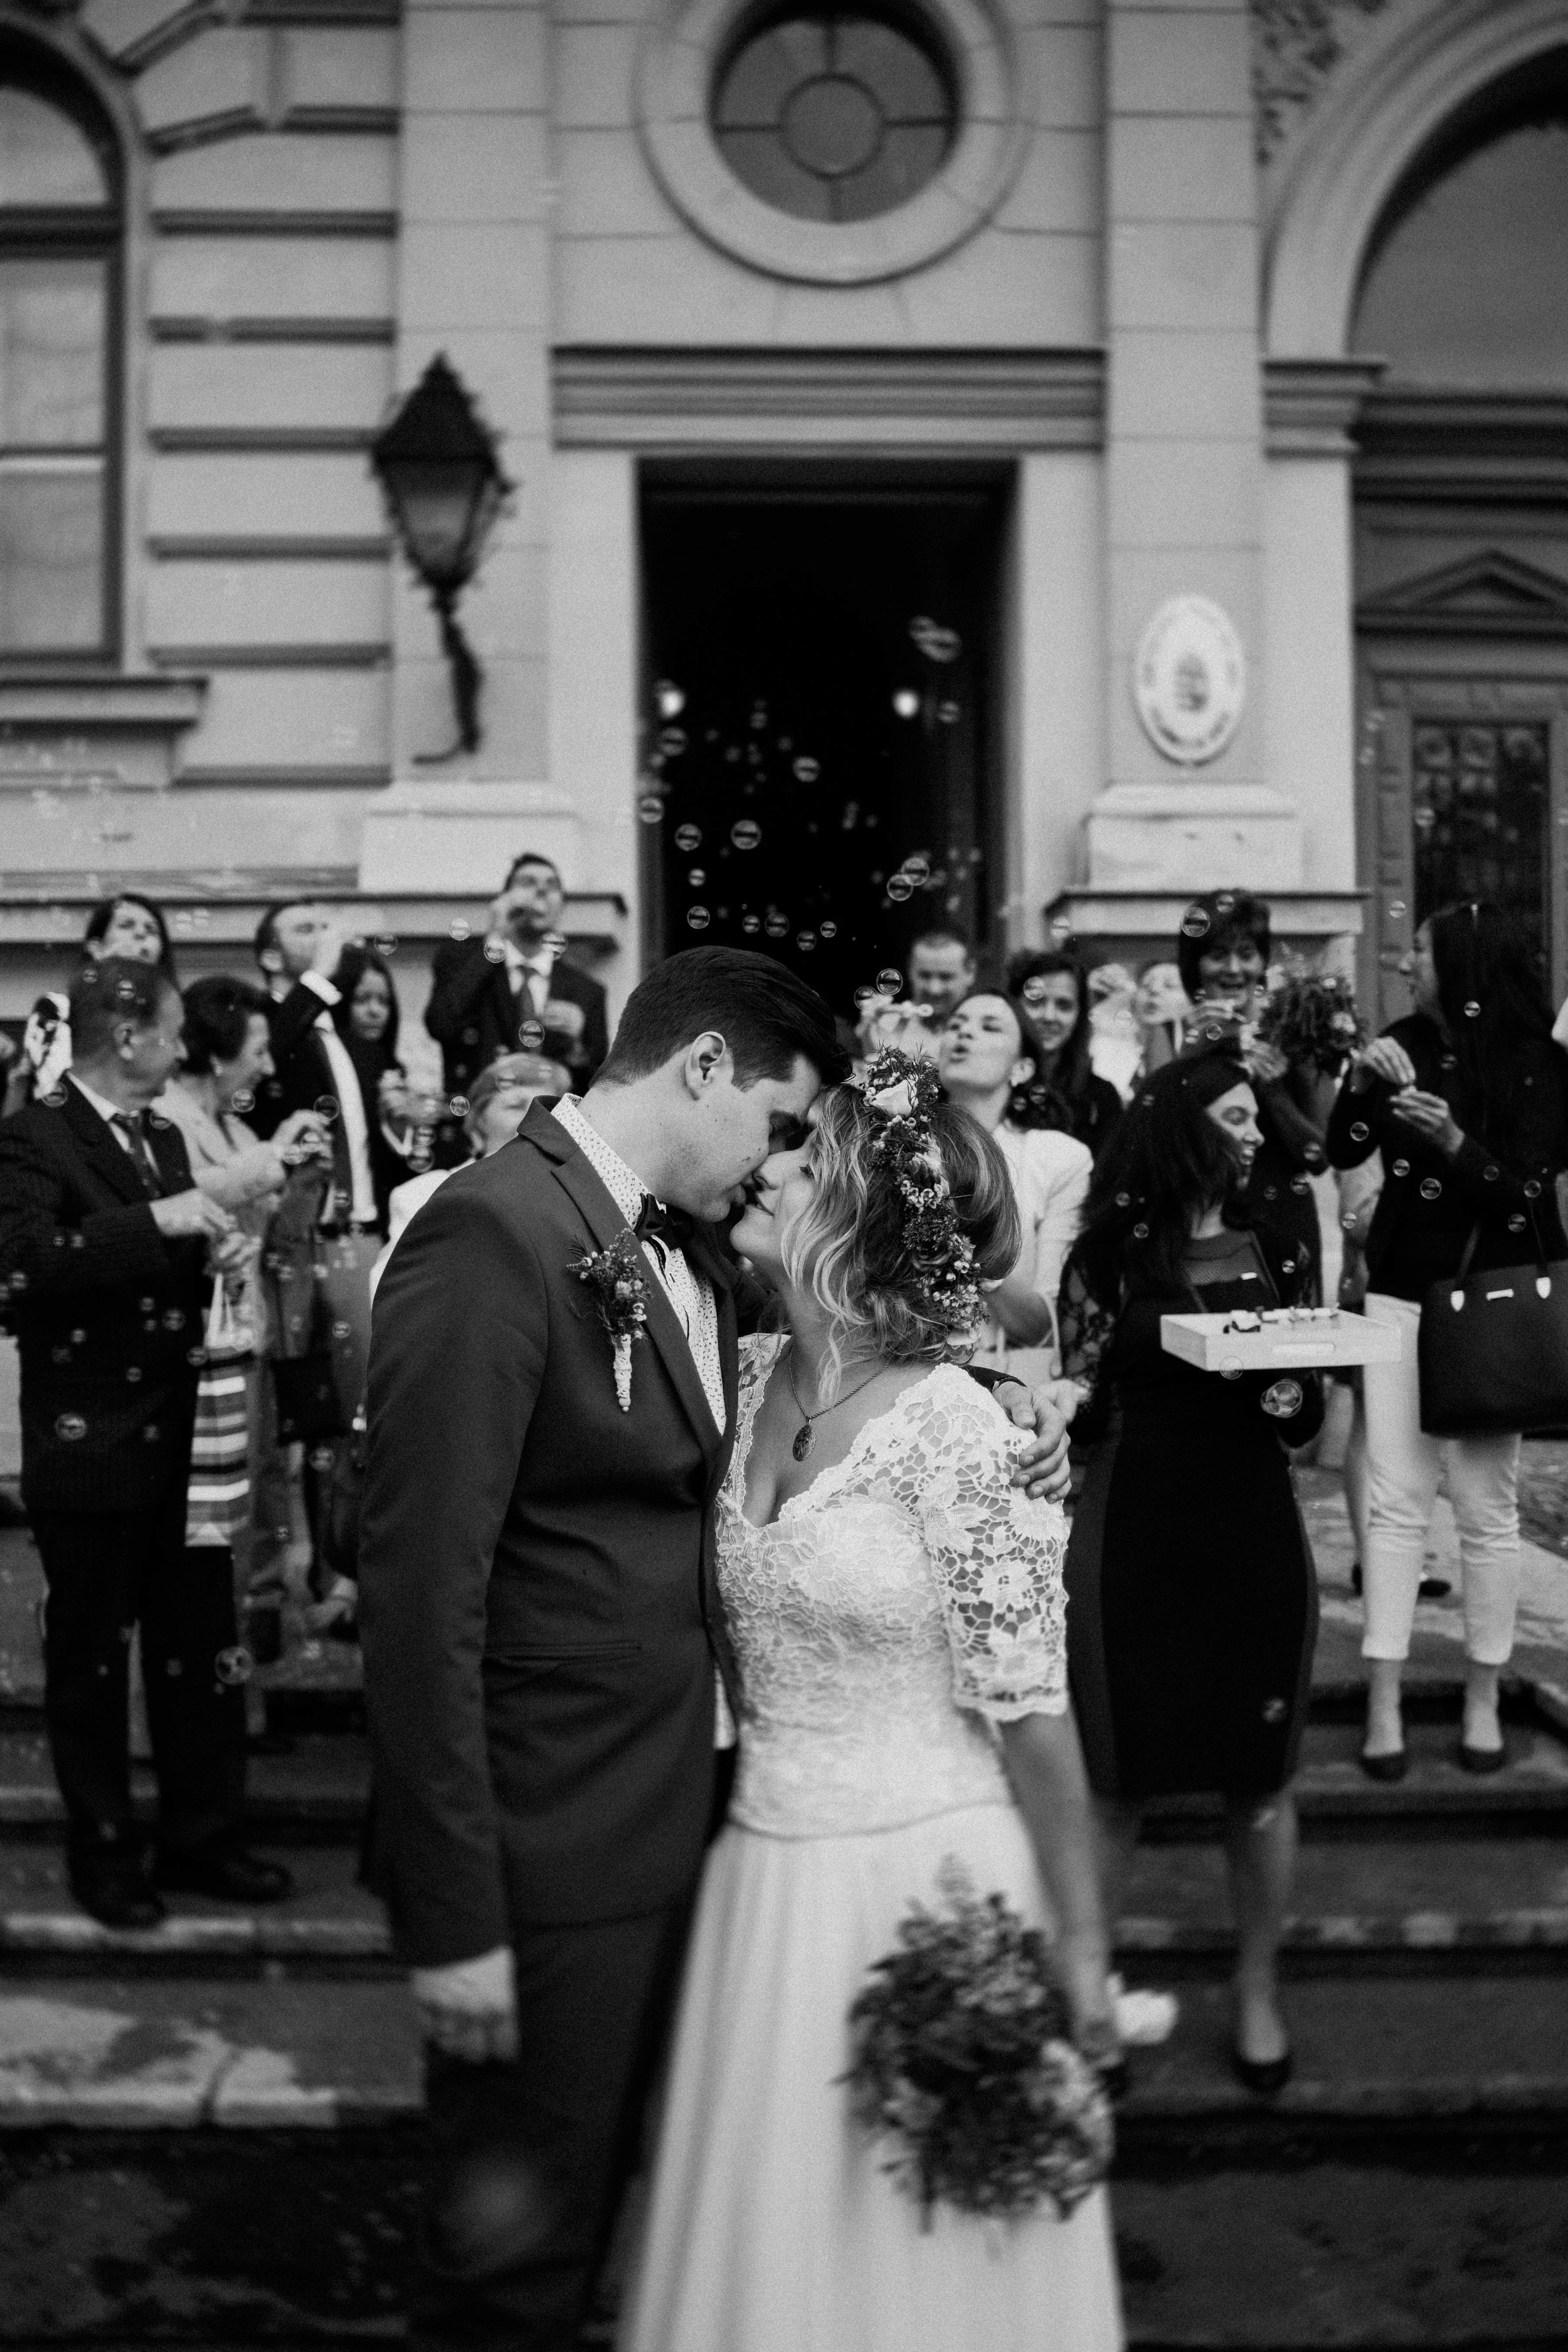 20170506_Kriszta+David_wedding_w_357__MG_5983_2-Edit.jpg